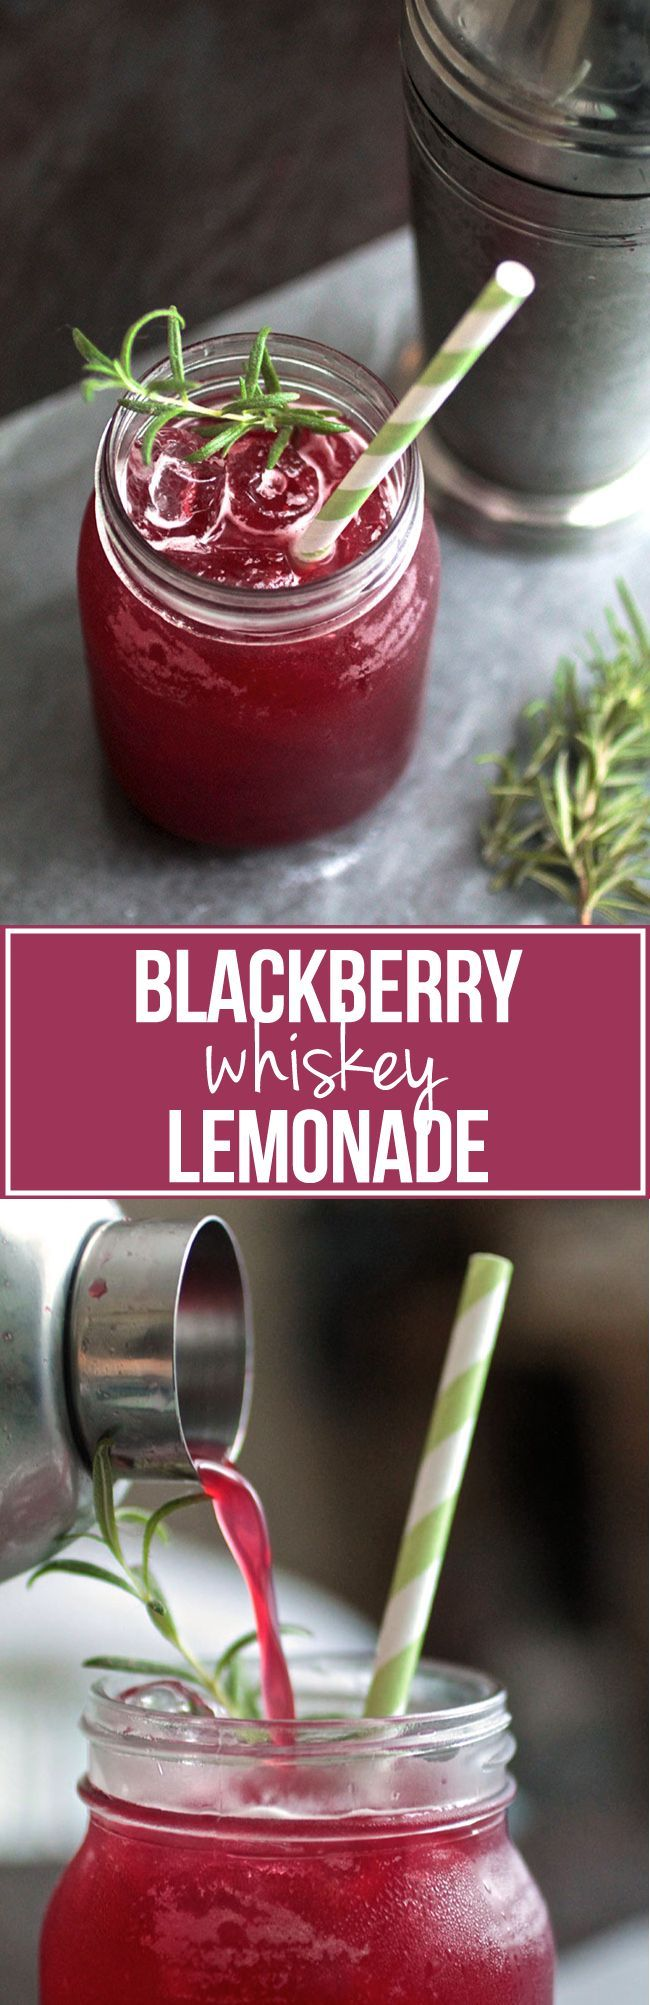 Blackberry Whiskey Lemonade| Seems like a bit of work but sounds delicious! {wineglasswriter.com/}